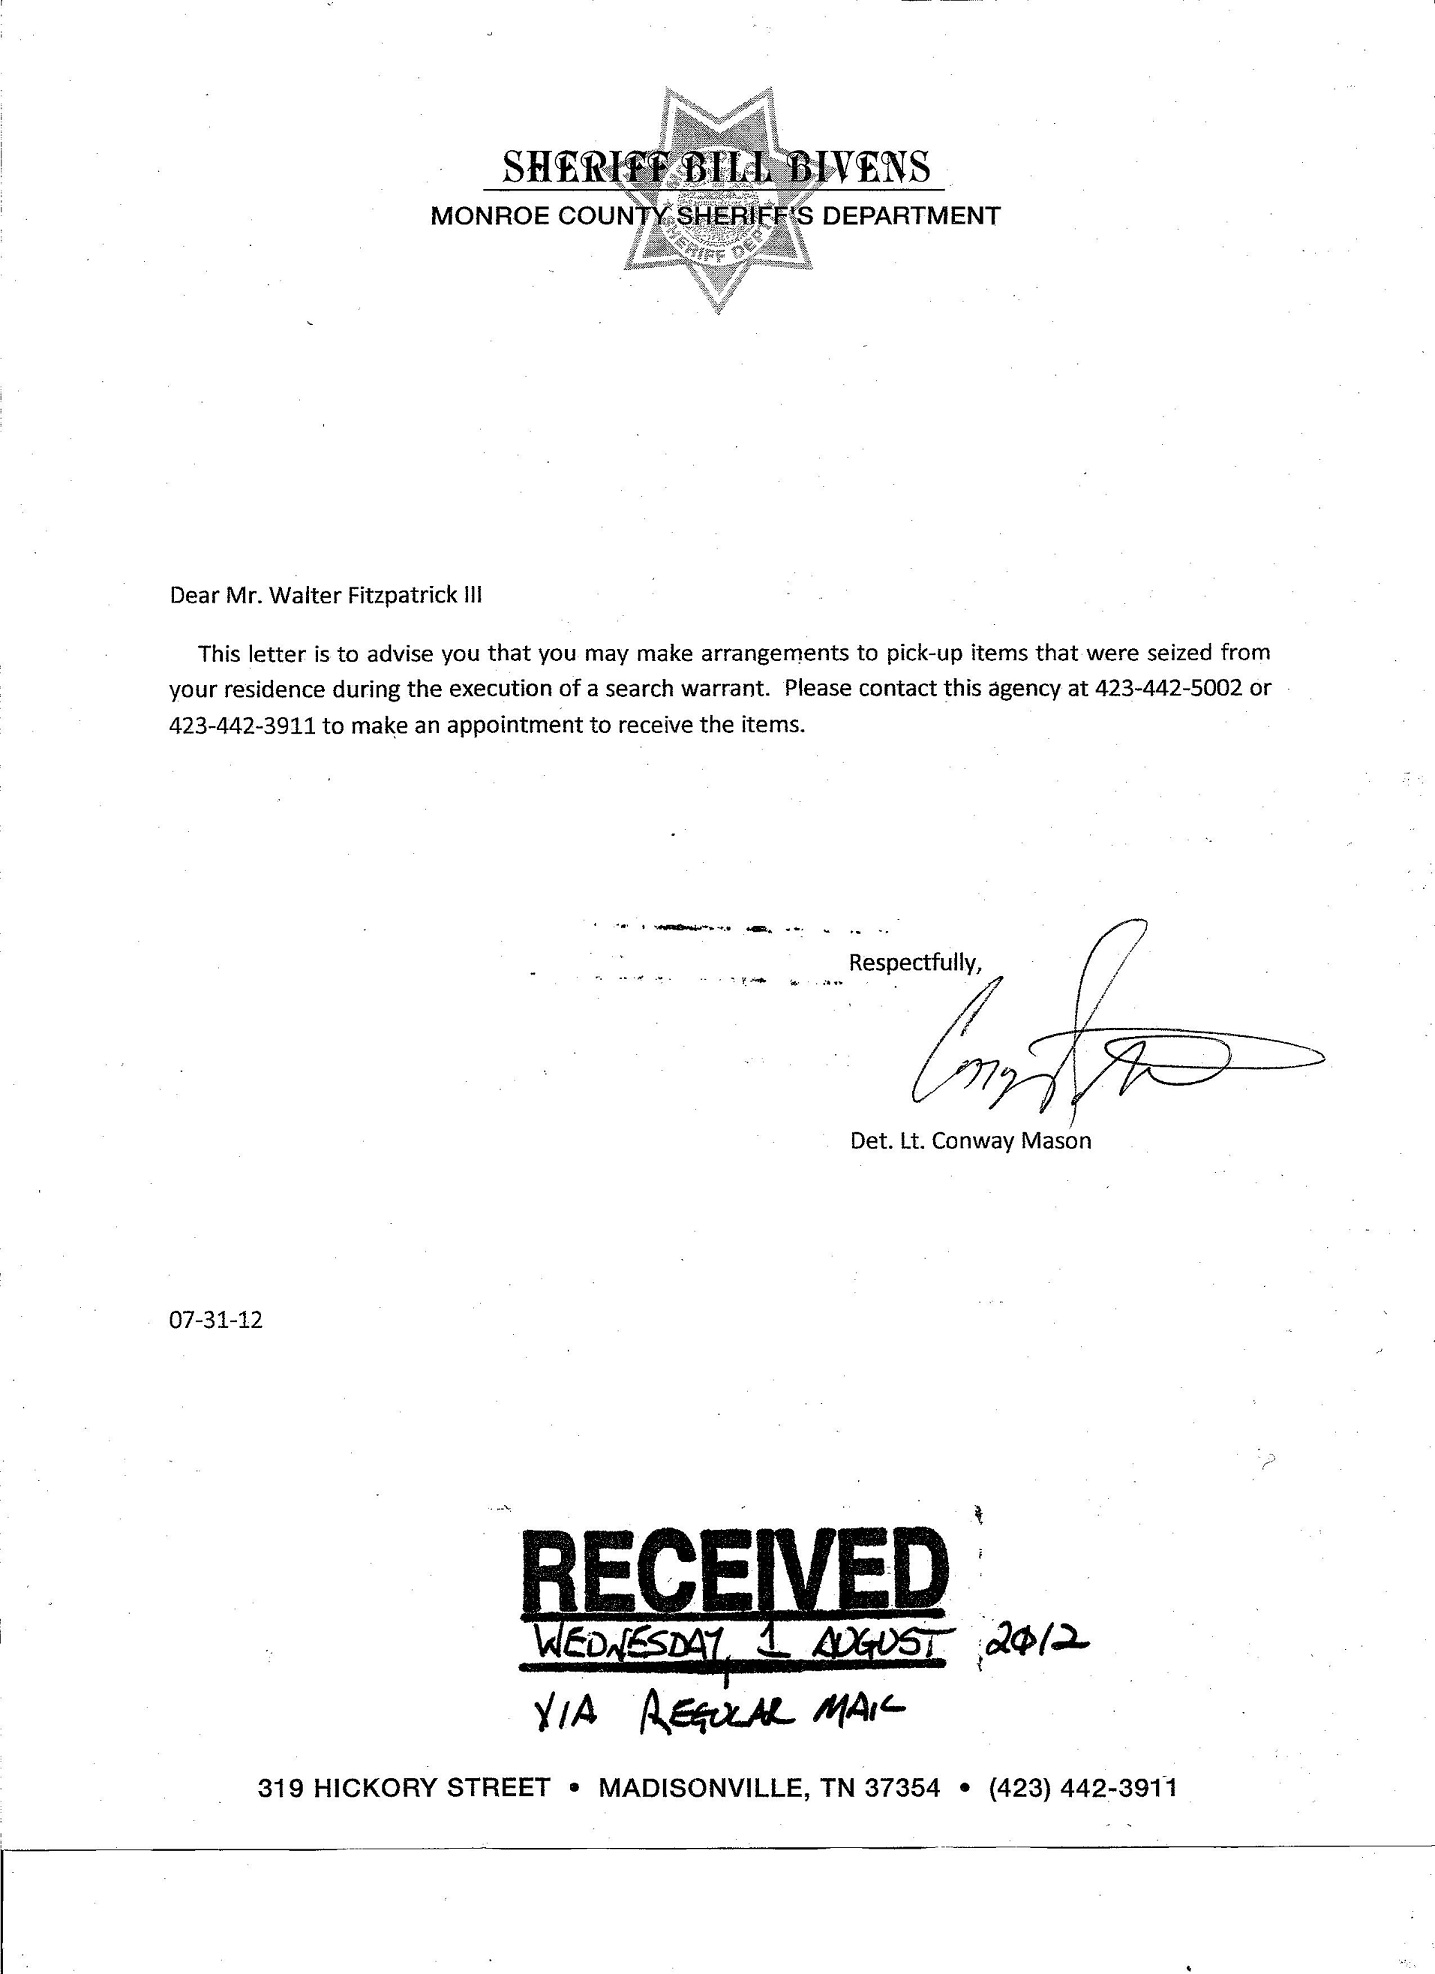 Bill Bivens Equipment Letter bottom